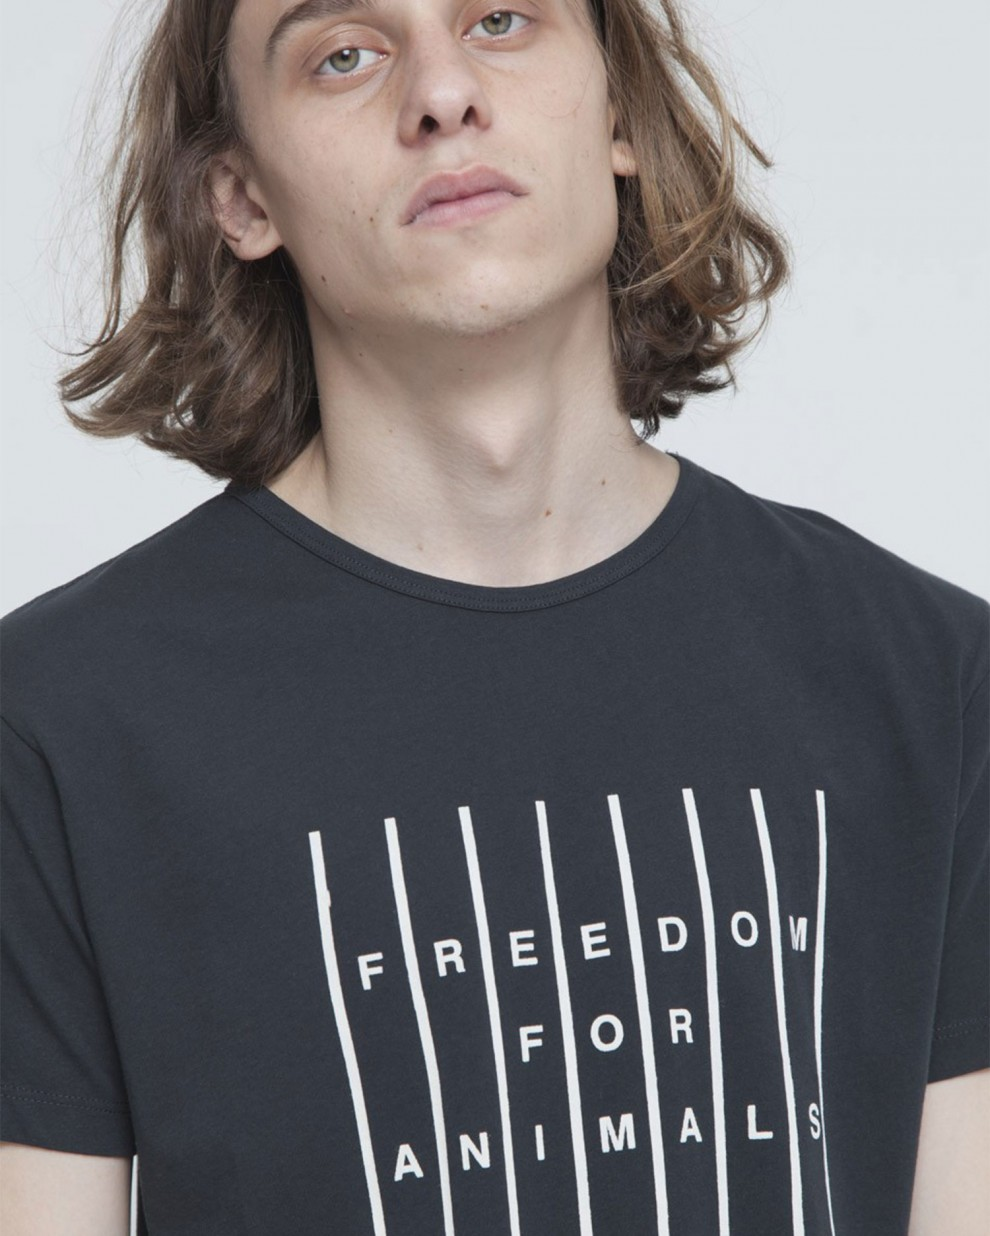 Freedom for animals tee